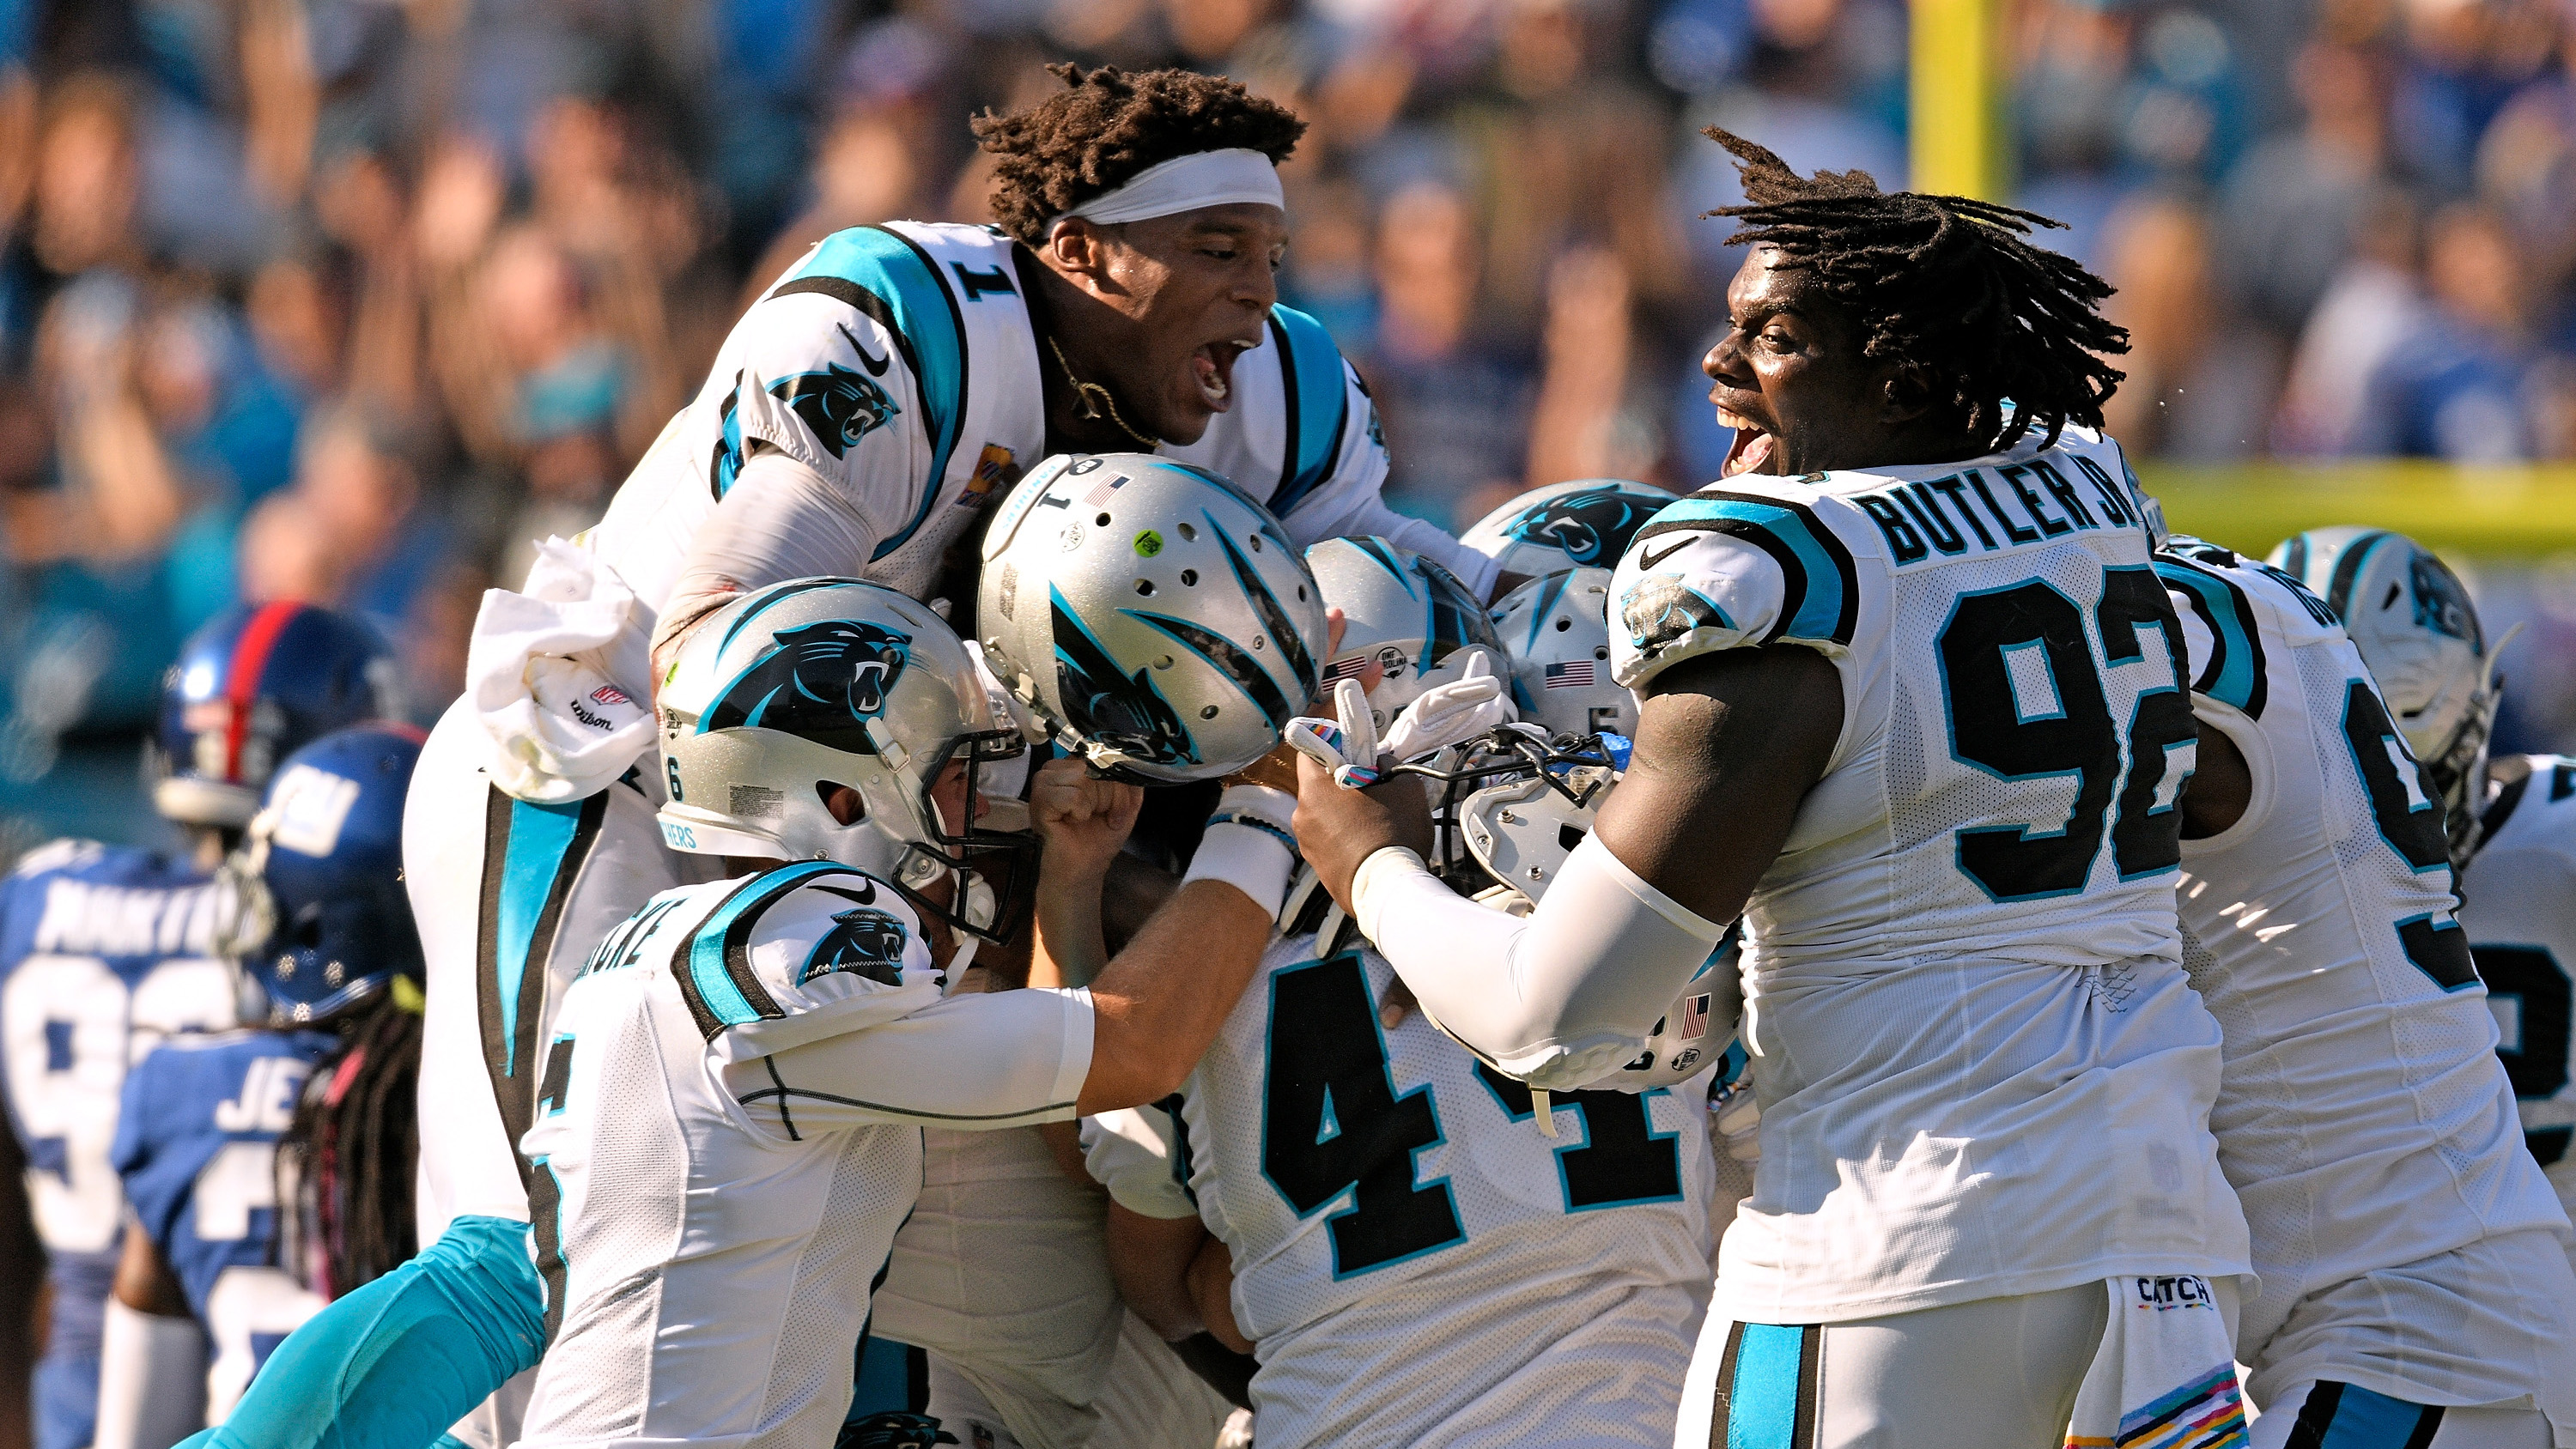 Graham Gano: Panthers-Giants finish ruined by Fox